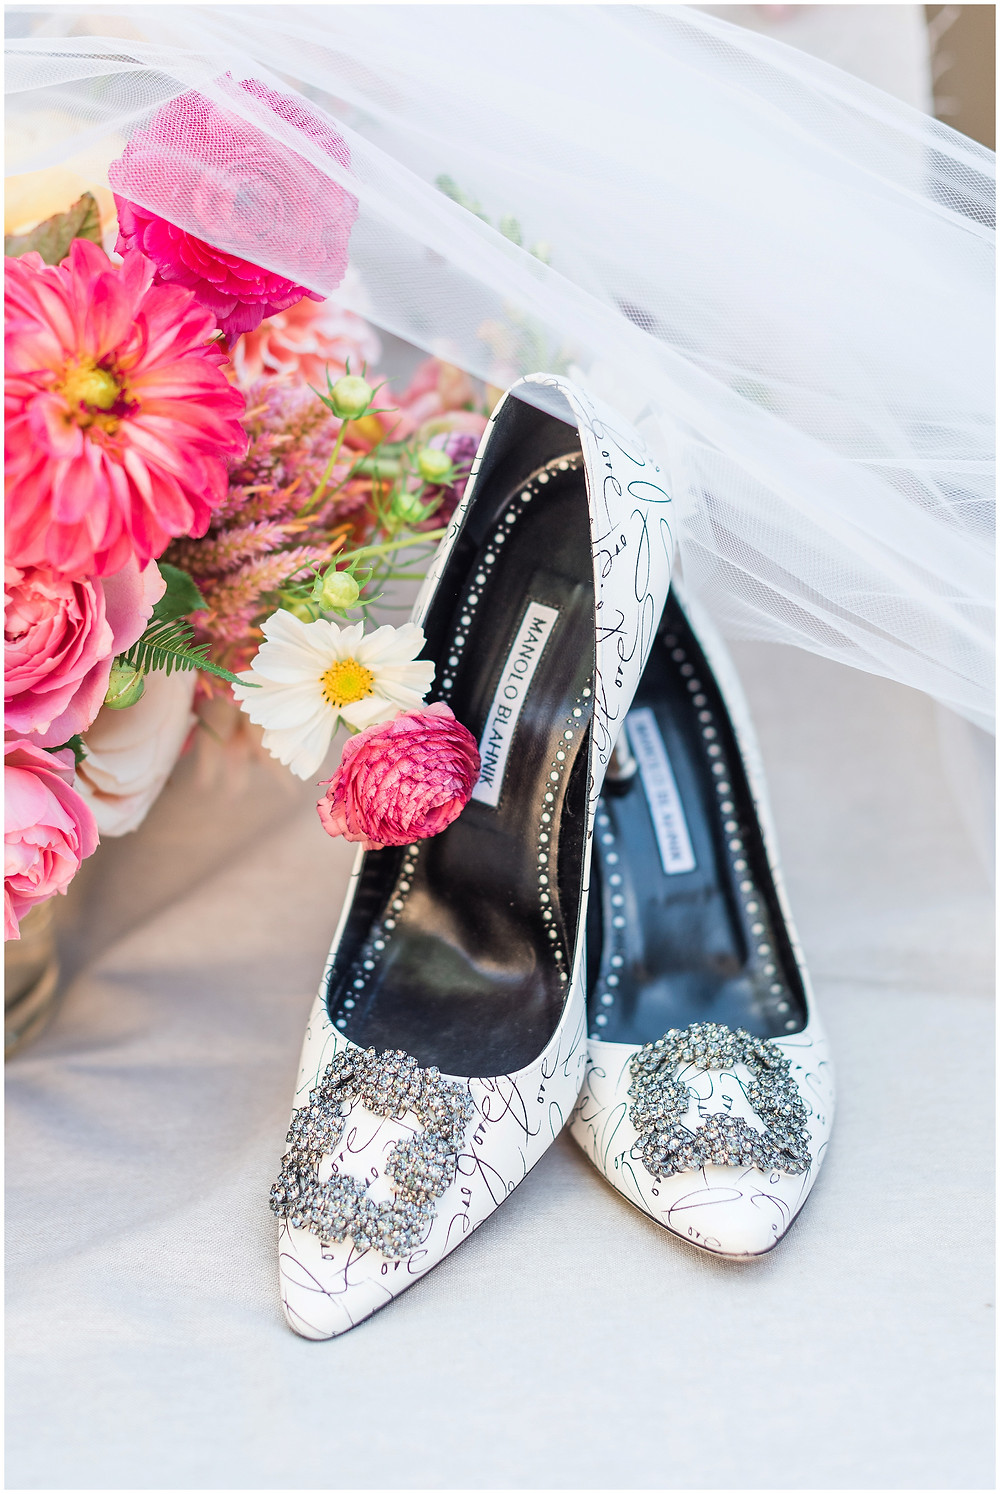 Manolo Blahnik wedding shoes. Long sleeved wedding dress. Pets in weddings. Goldendoodle. Goldendoodle in wedding. Asian inspired wedding. La Posada Wedding. La Posada Santa Fe Wedding.